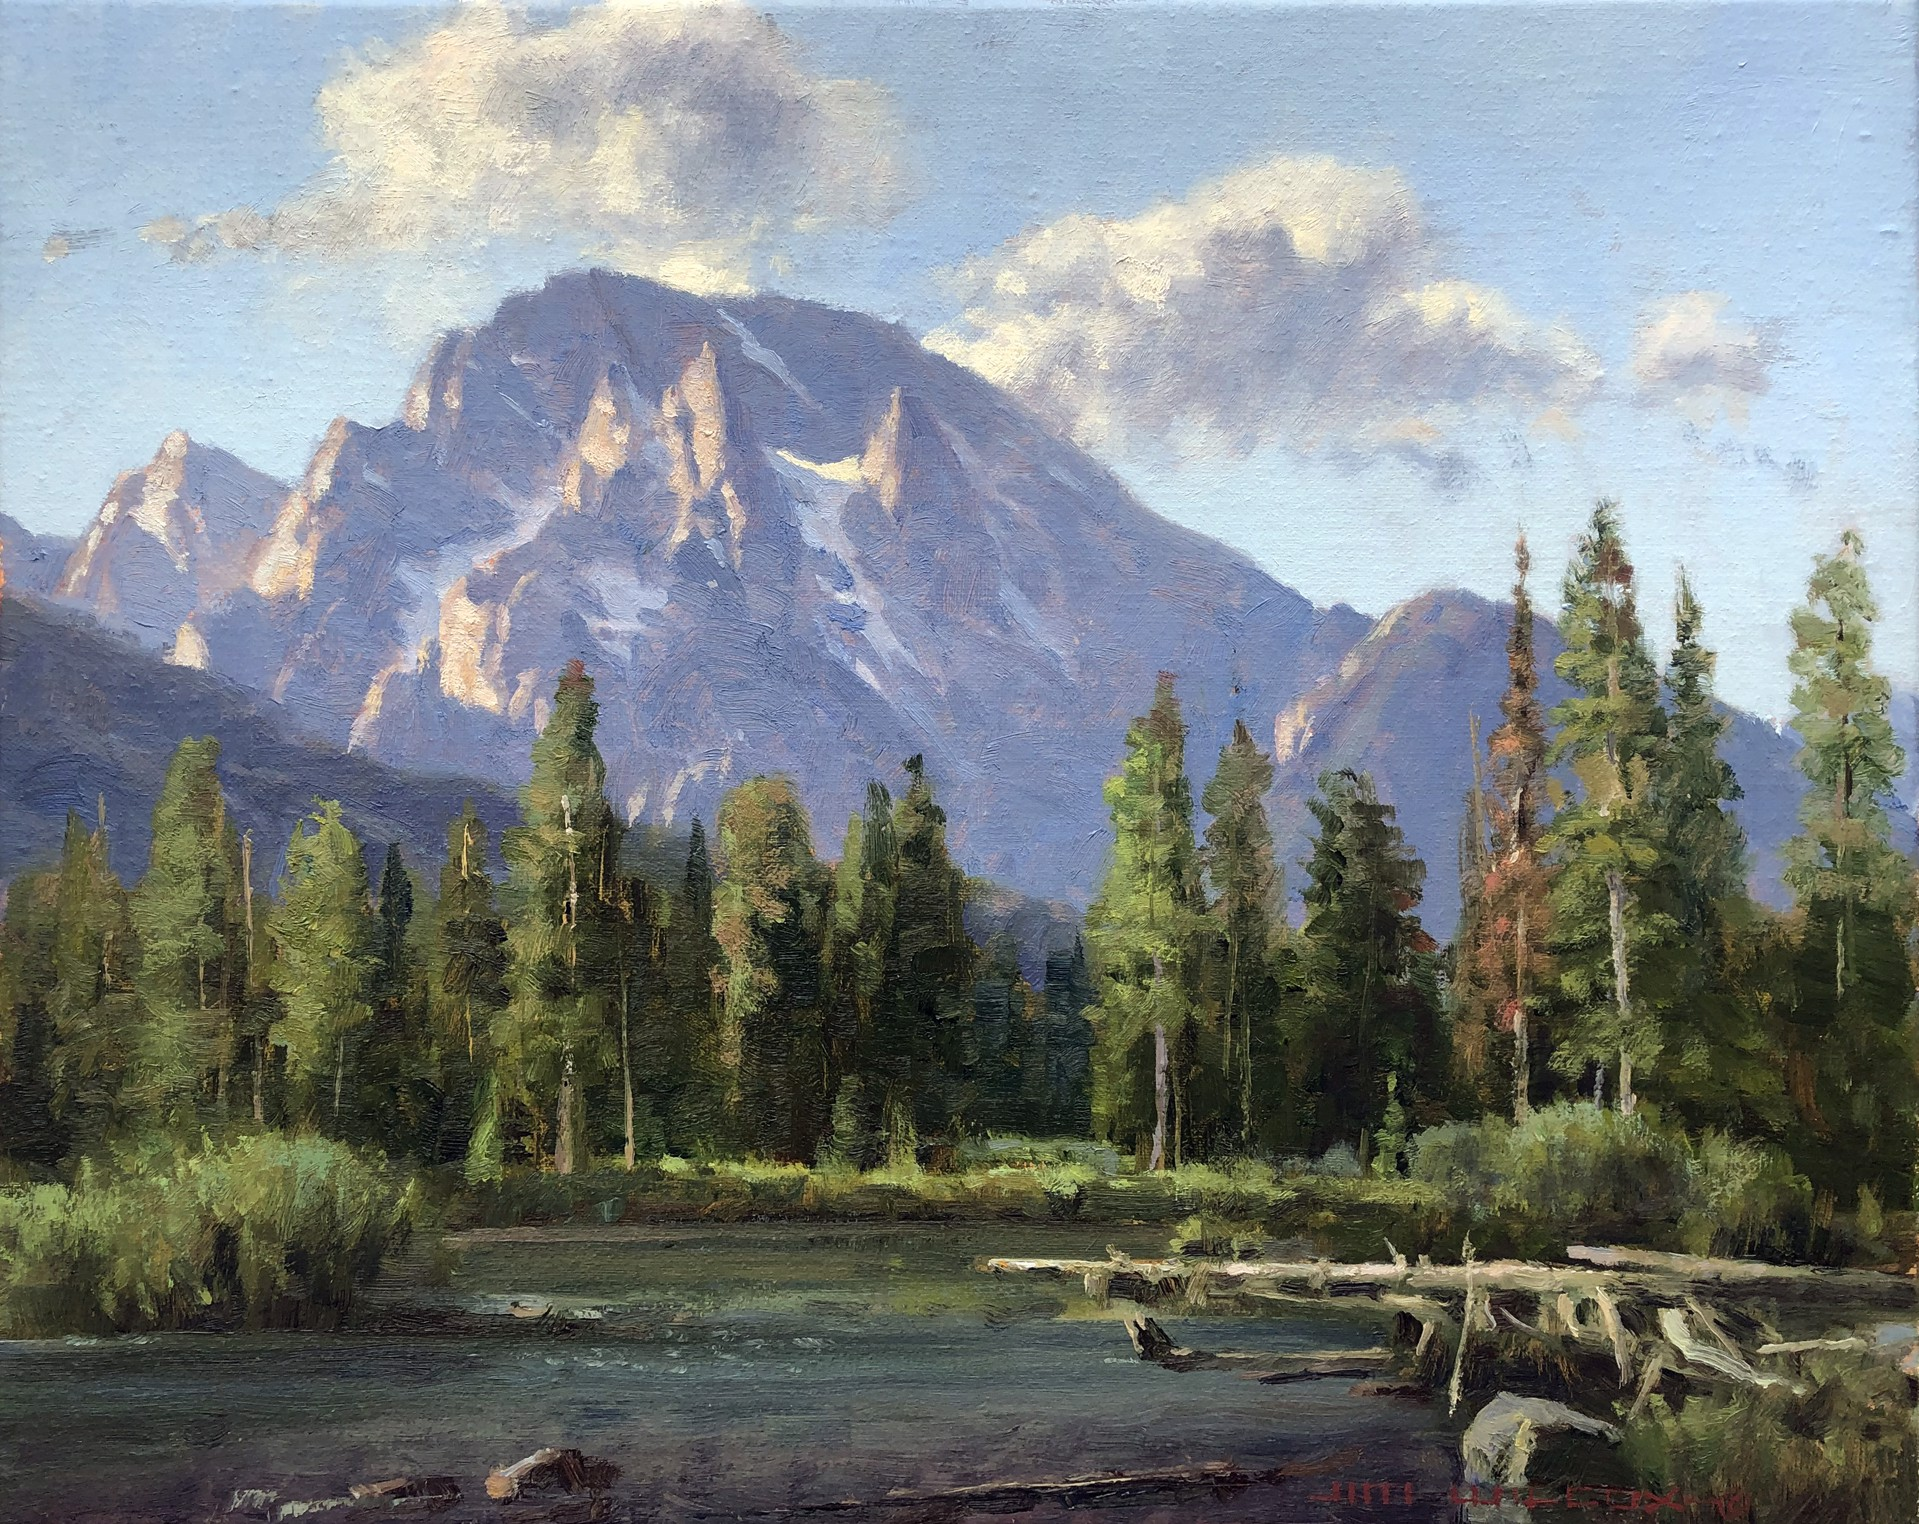 String Lake Outlet by Jim Wilcox